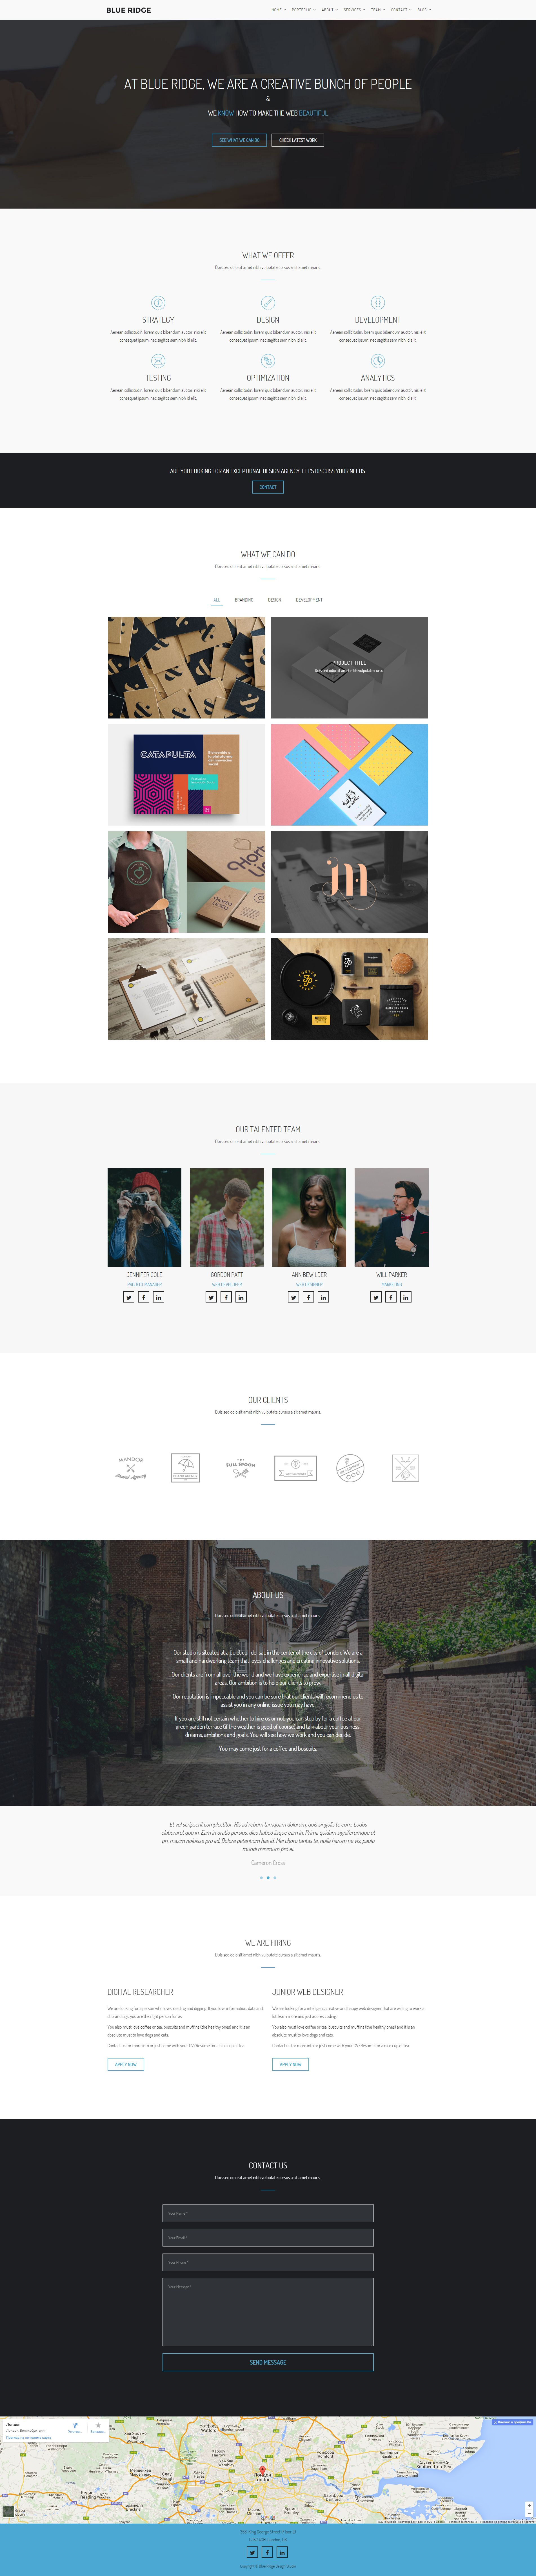 Blue Ridge - MultiPurpose Portfolio HTML Template Screenshot 1